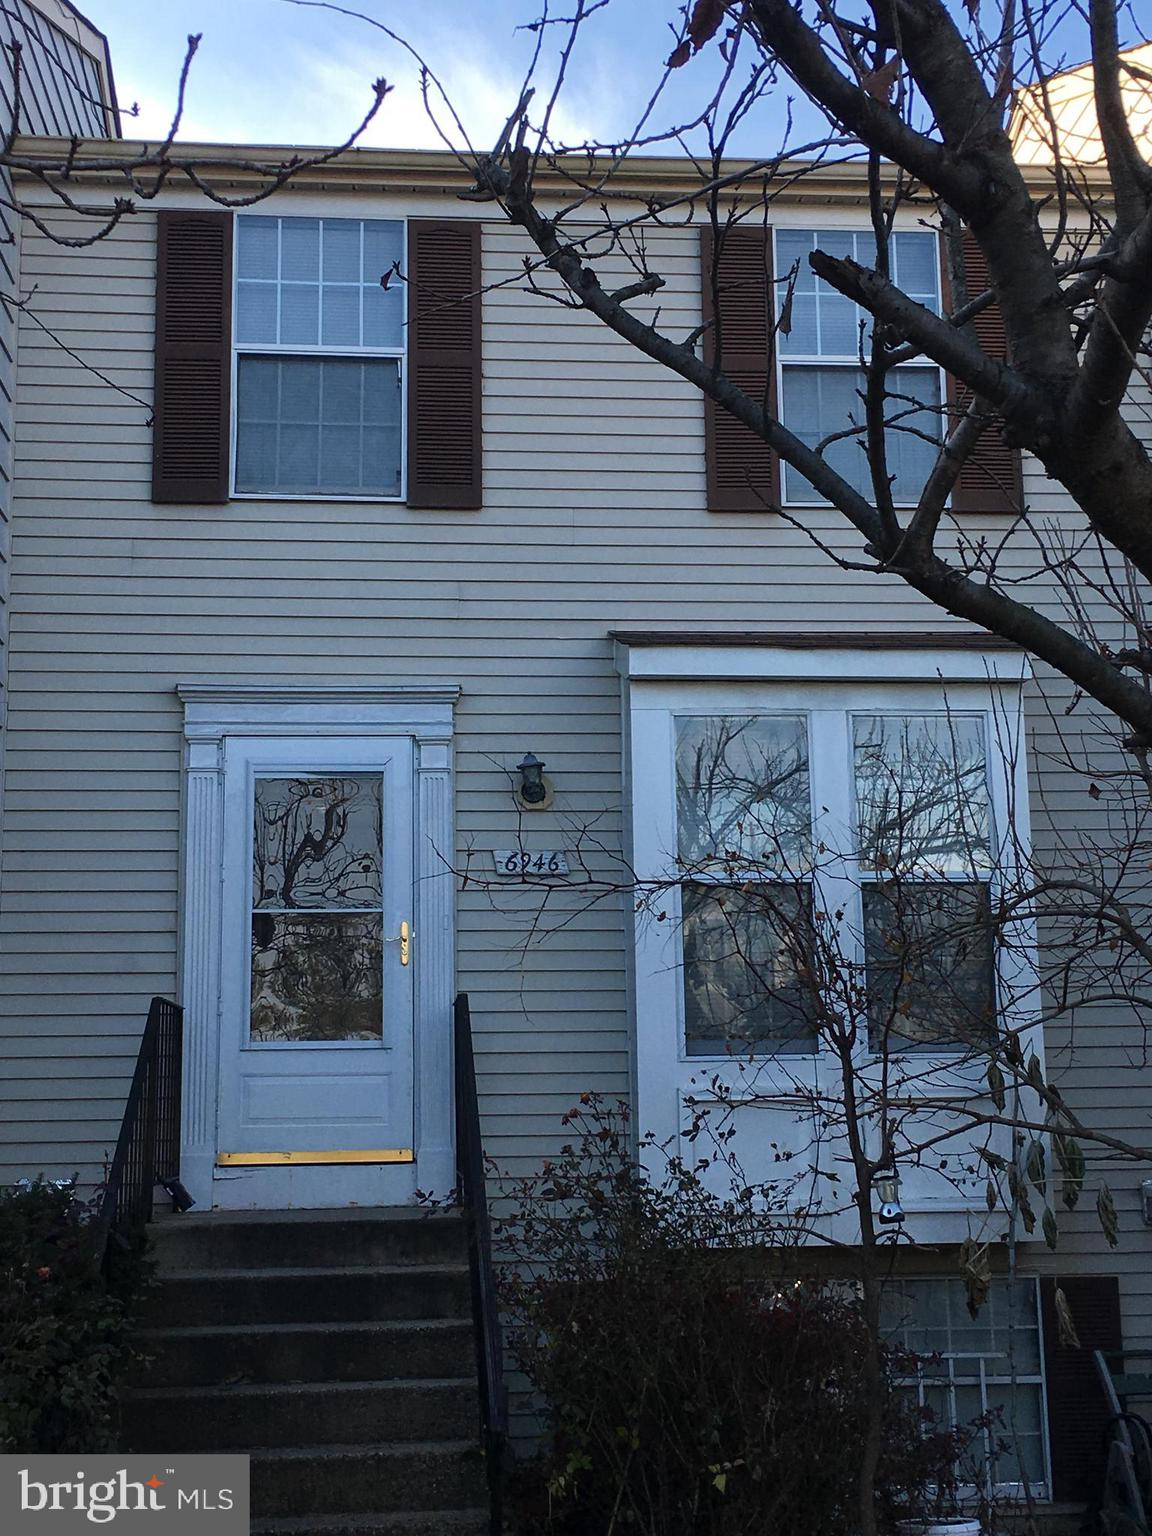 3 Level Townhouse,close to I-95,495,Fairfax County Pkwy,Mall & Metro.